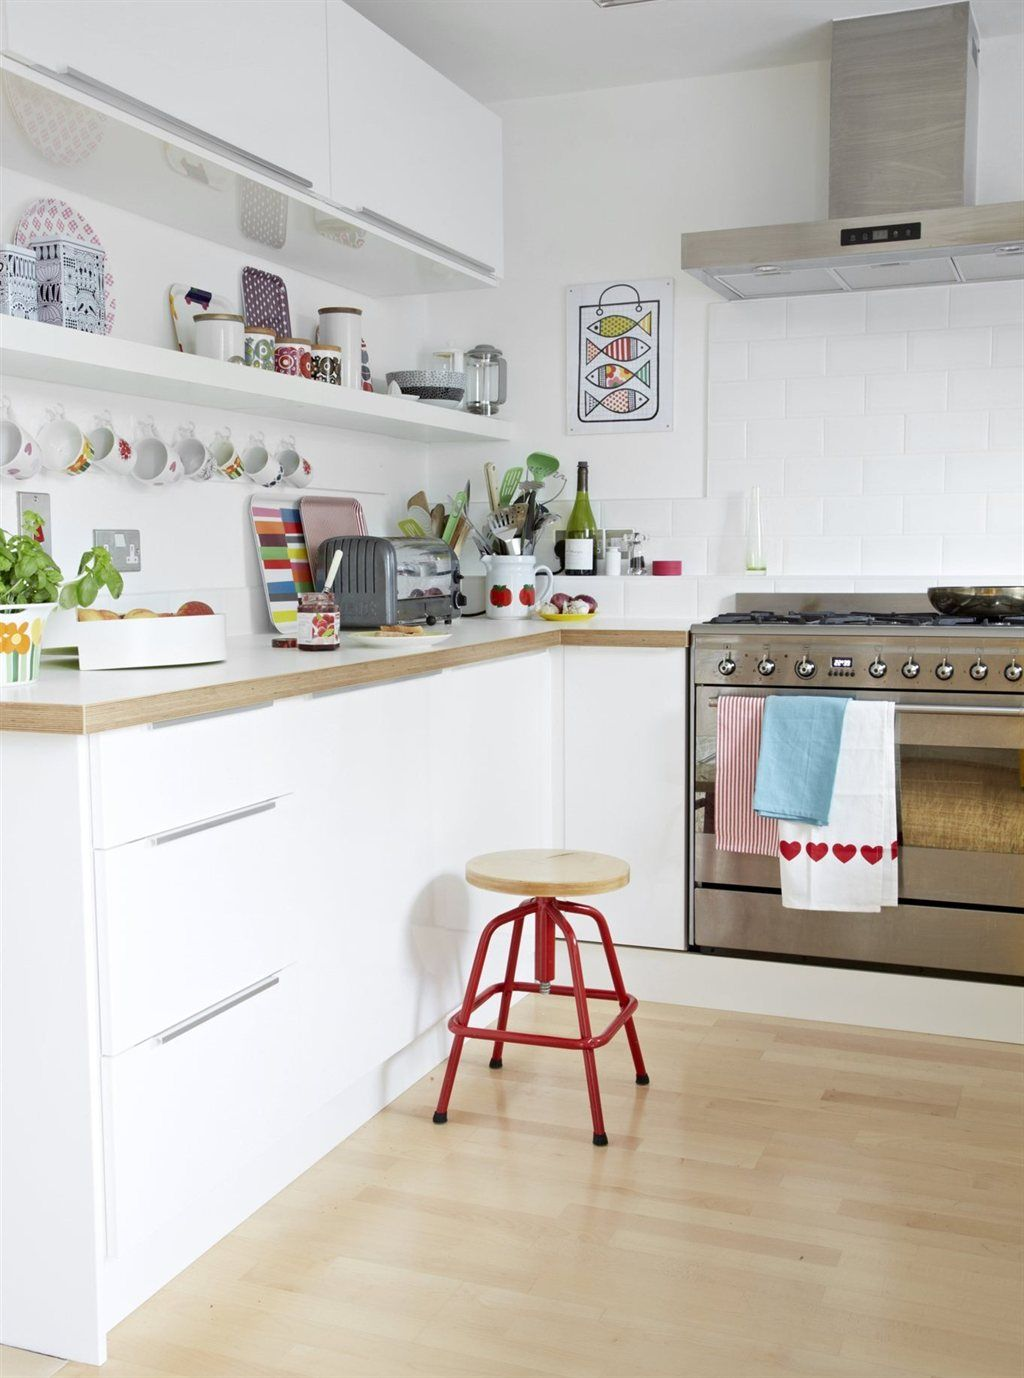 akurumabstrakt high gloss white wall cabinets see ikea usacom - Ikea Akurum Kitchen Cabinets